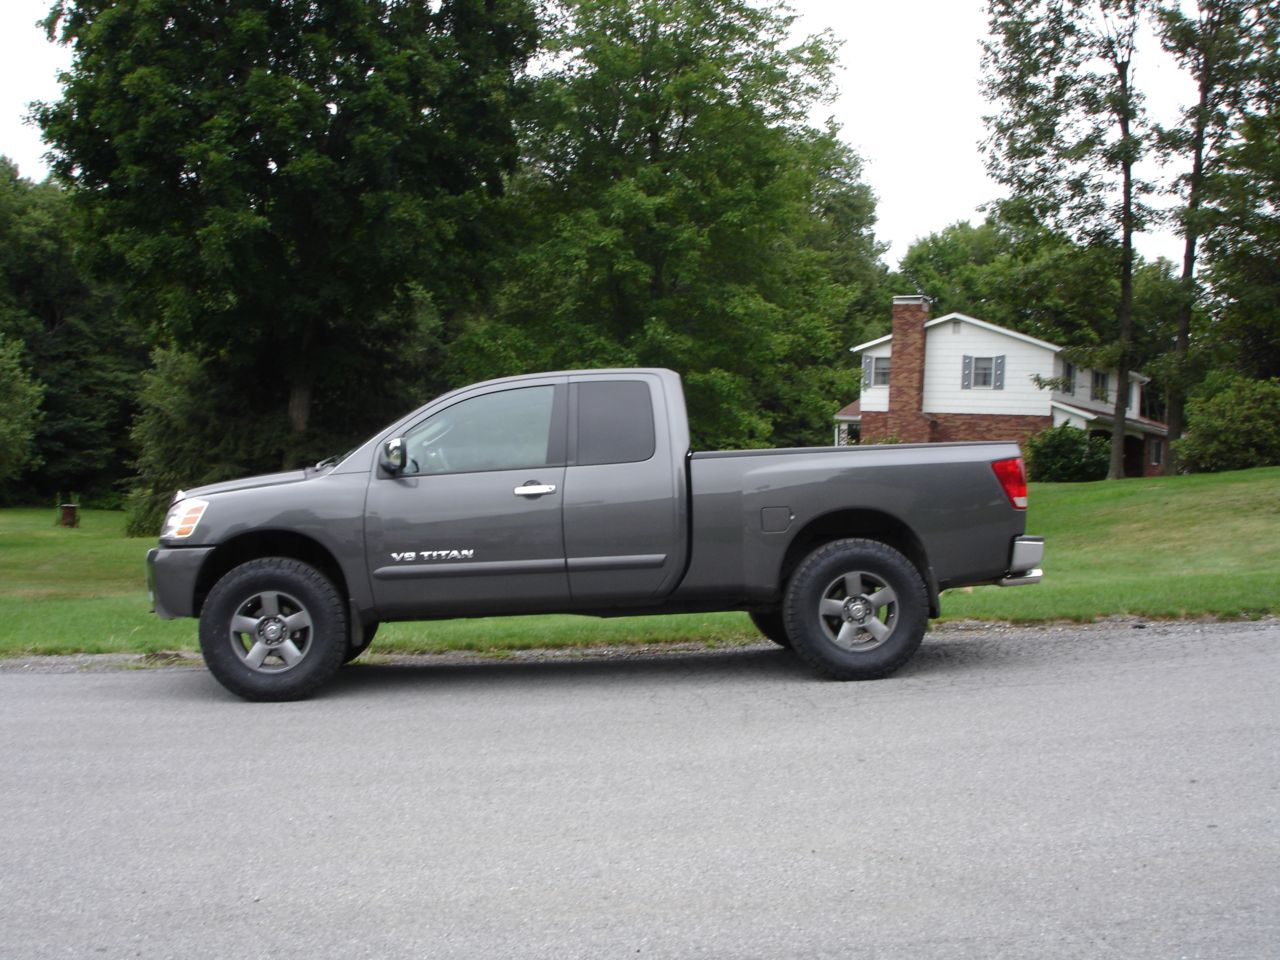 nissan titan forum view single post burtman industries lift and leveling kits special pricing. Black Bedroom Furniture Sets. Home Design Ideas